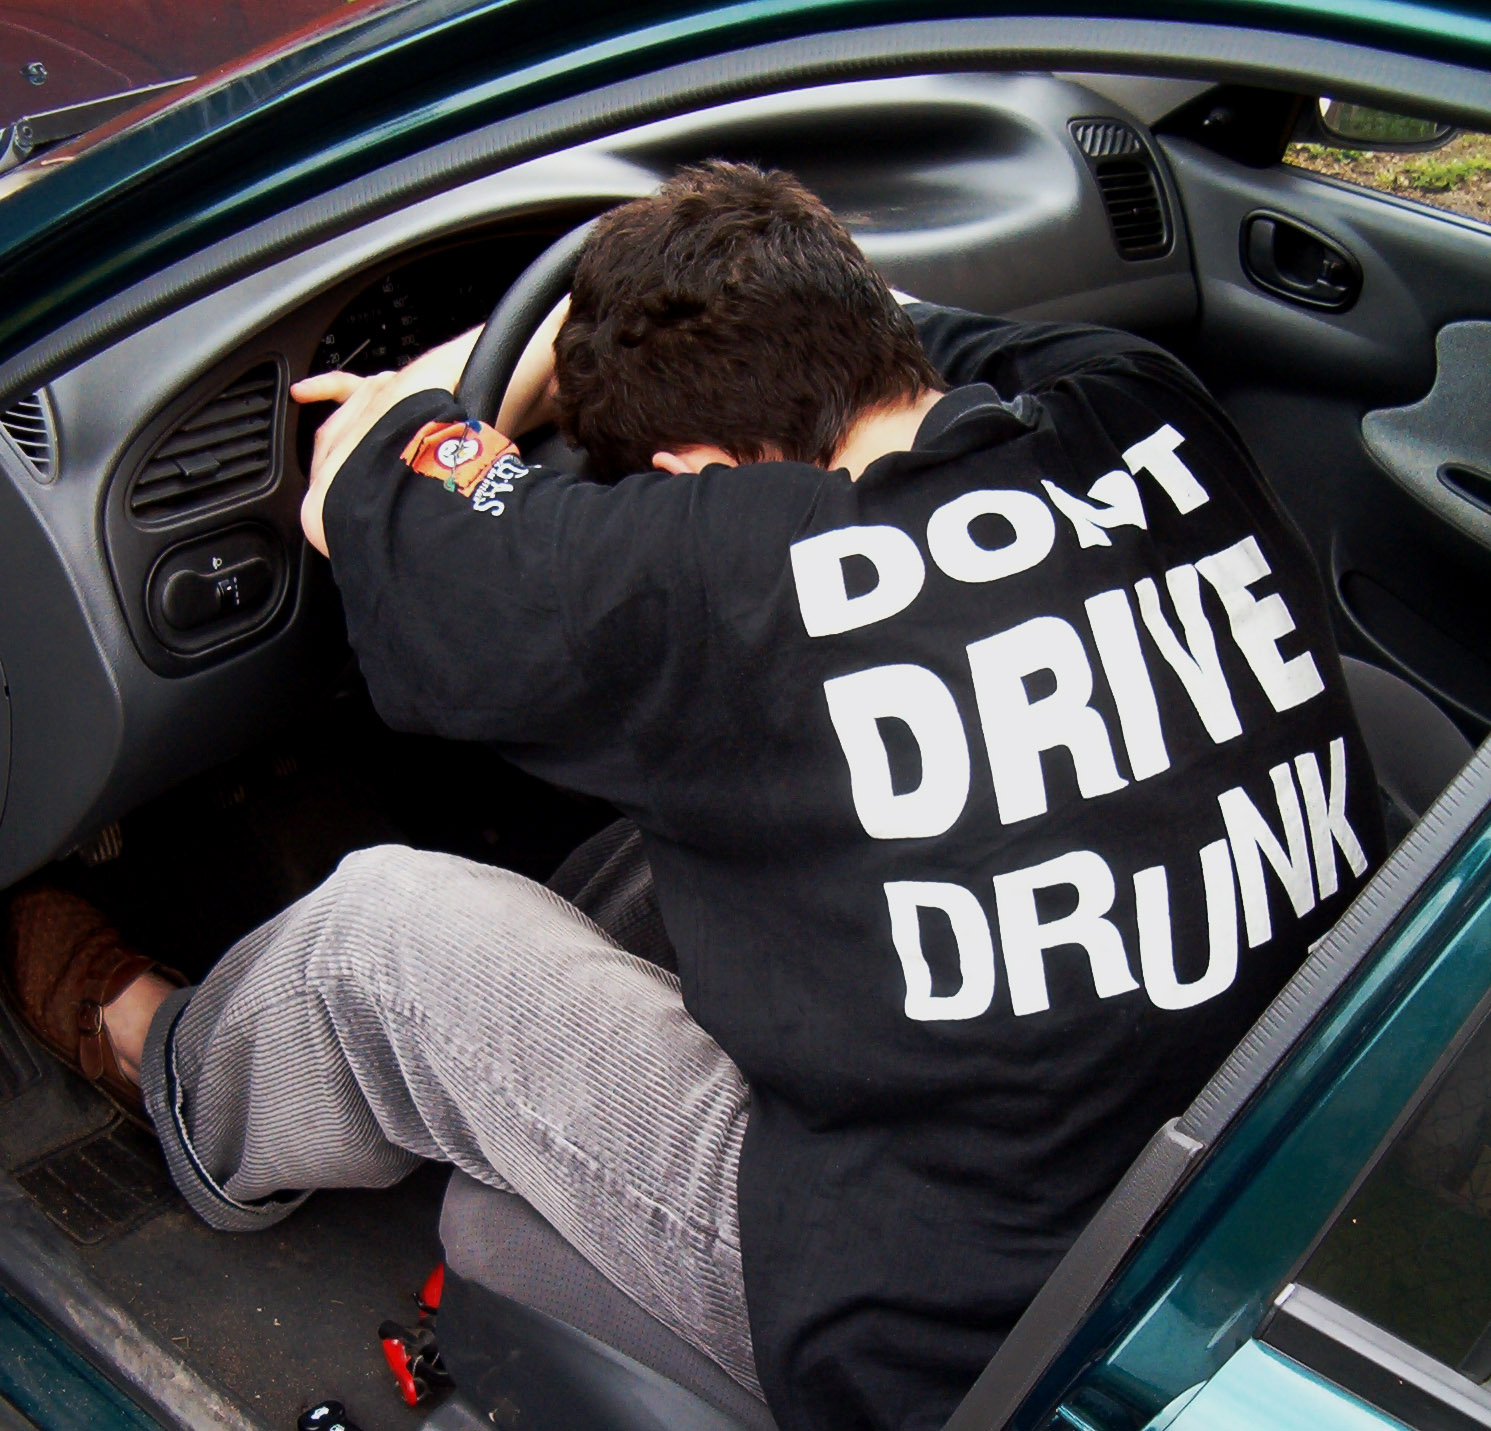 drunk driving visual argument 2 format of sources from which you've drawn information for your visual argument: logos, graphics, photos, claims and research, websites, and so on.